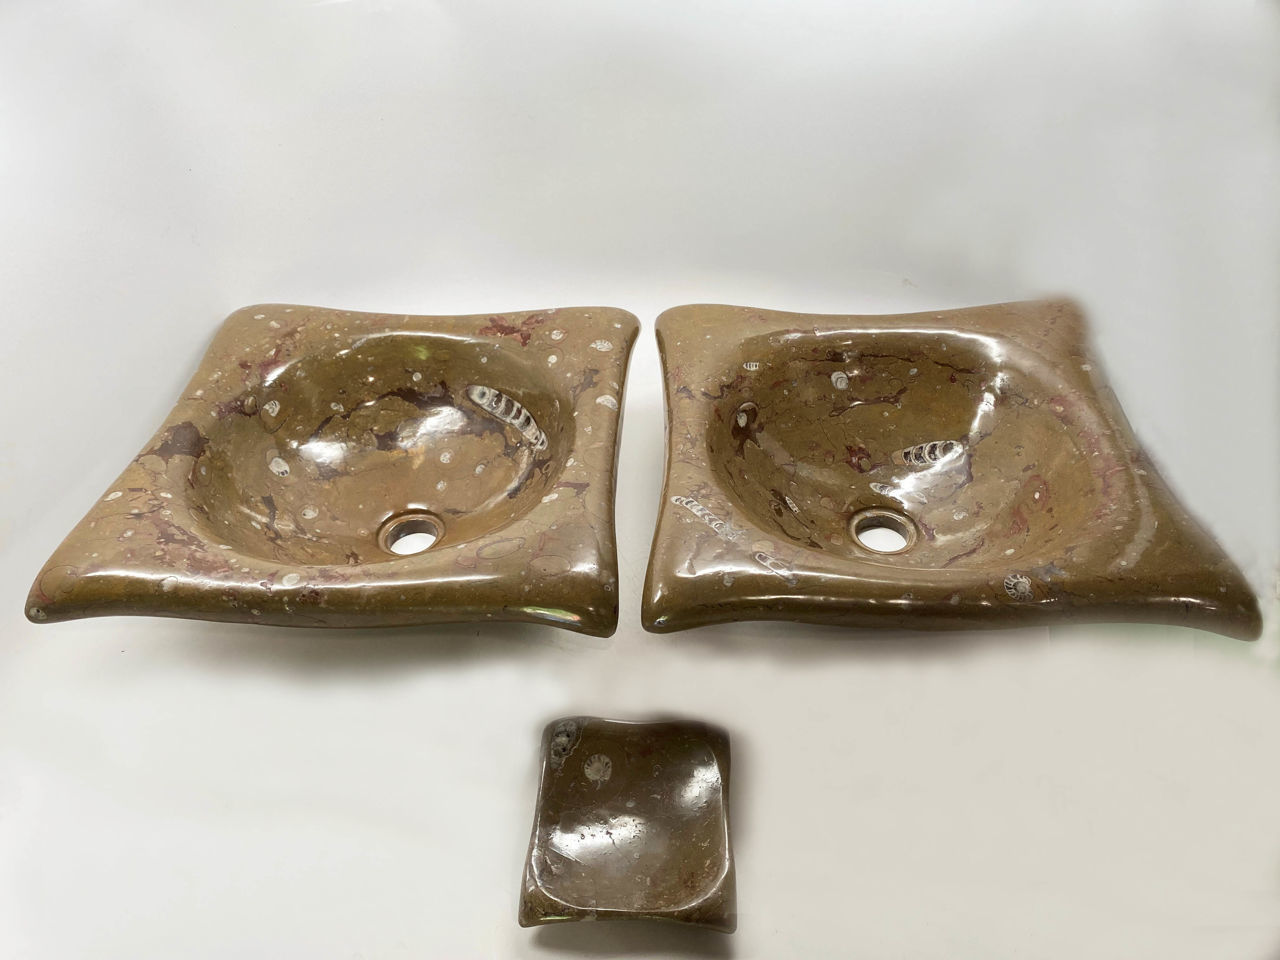 Picture of Tortuga Fossil Vessels in Desert Oasis - Set of 2